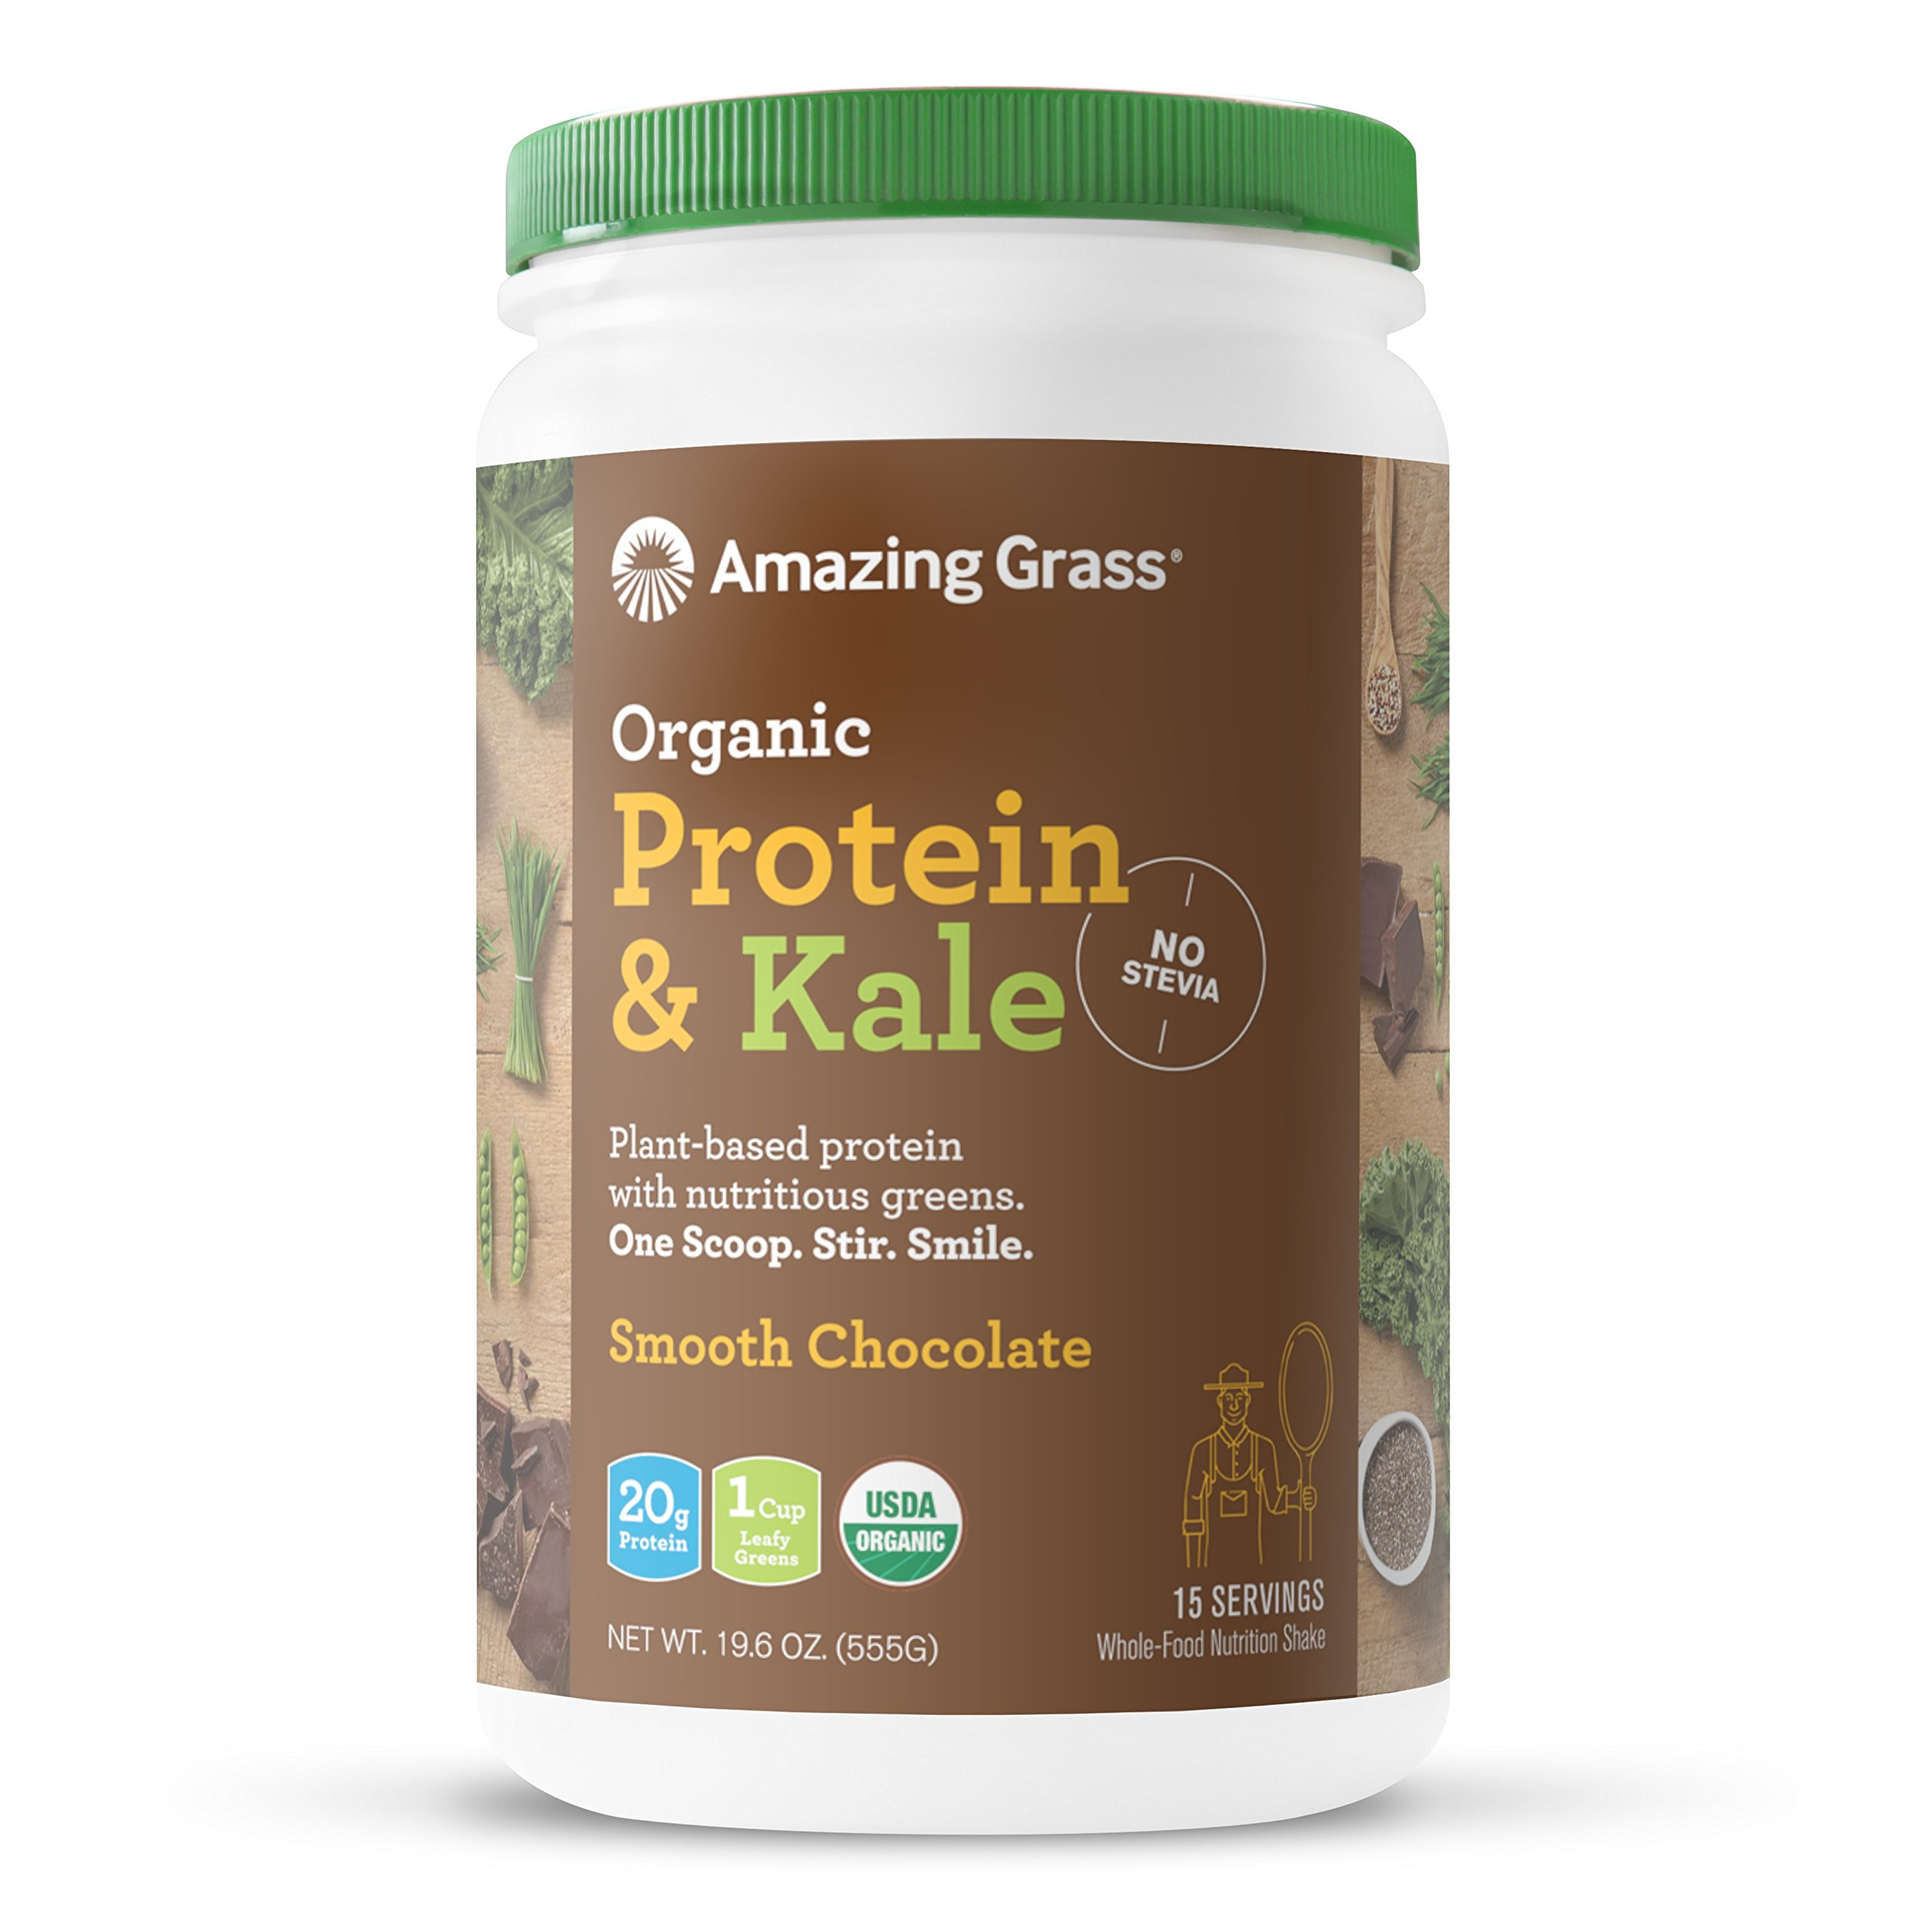 Amazing Grass Organic Plant Based Vegan Protein & Kale Powder, Flavor: Chocolate, 15 servings, 20g protein, 19.6 Ounce, Greens, No Stevia, Non-GMO, Gluten Free